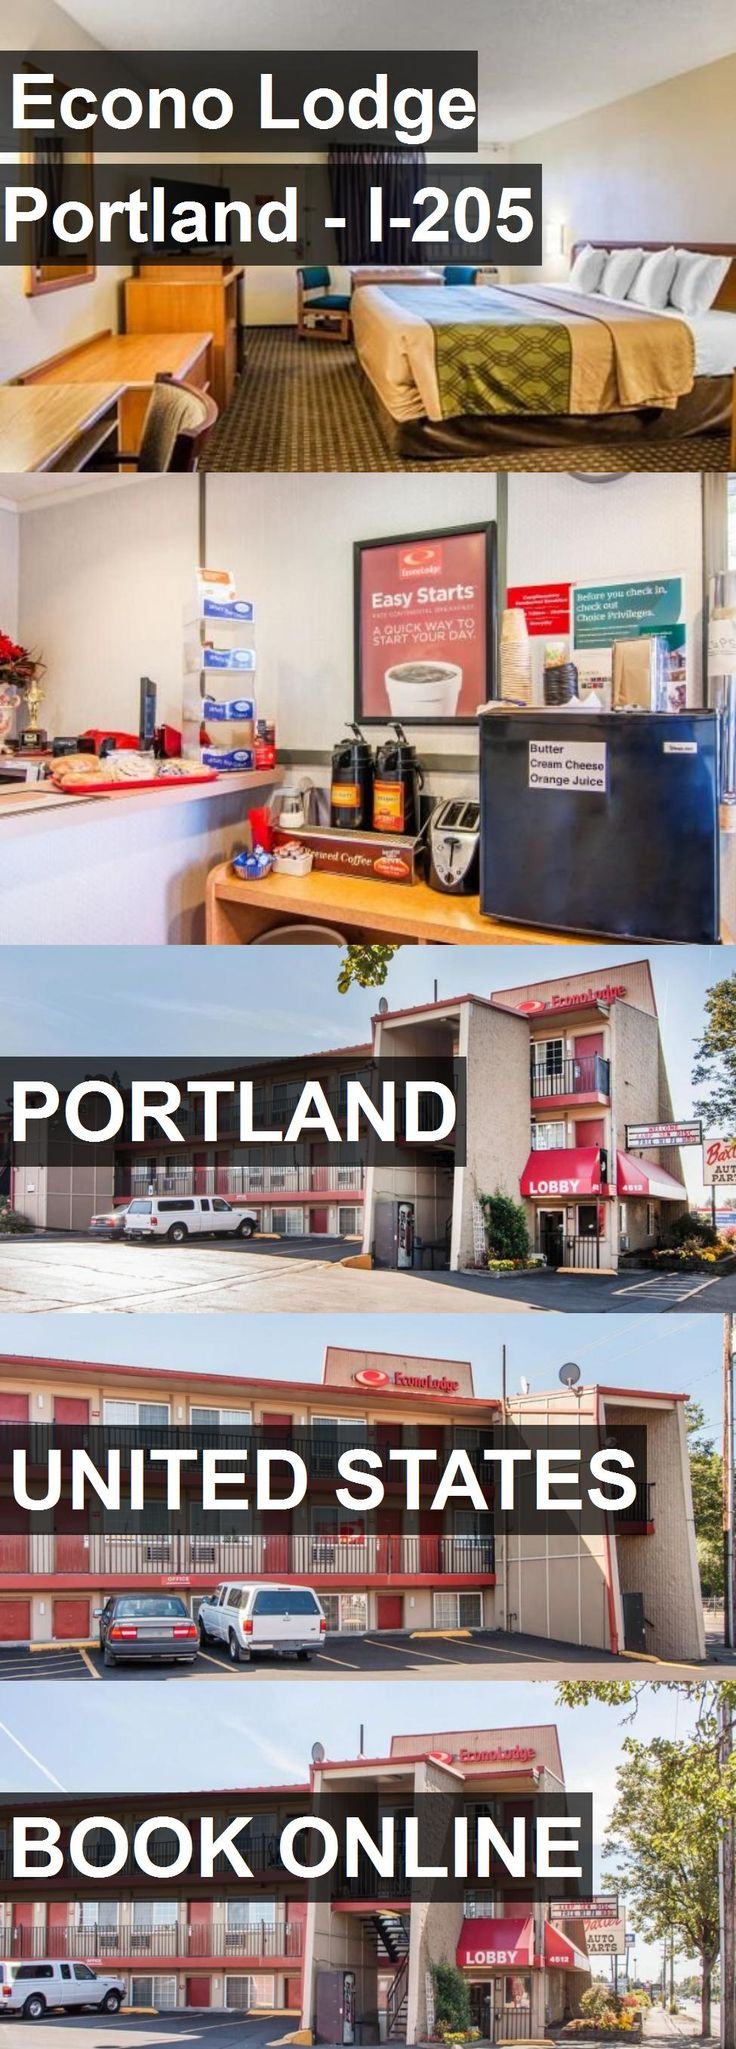 Hotel Econo Lodge Portland - I-205 in Portland, United States. For more information, photos, reviews and best prices please follow the link. #UnitedStates #Portland #travel #vacation #hotel